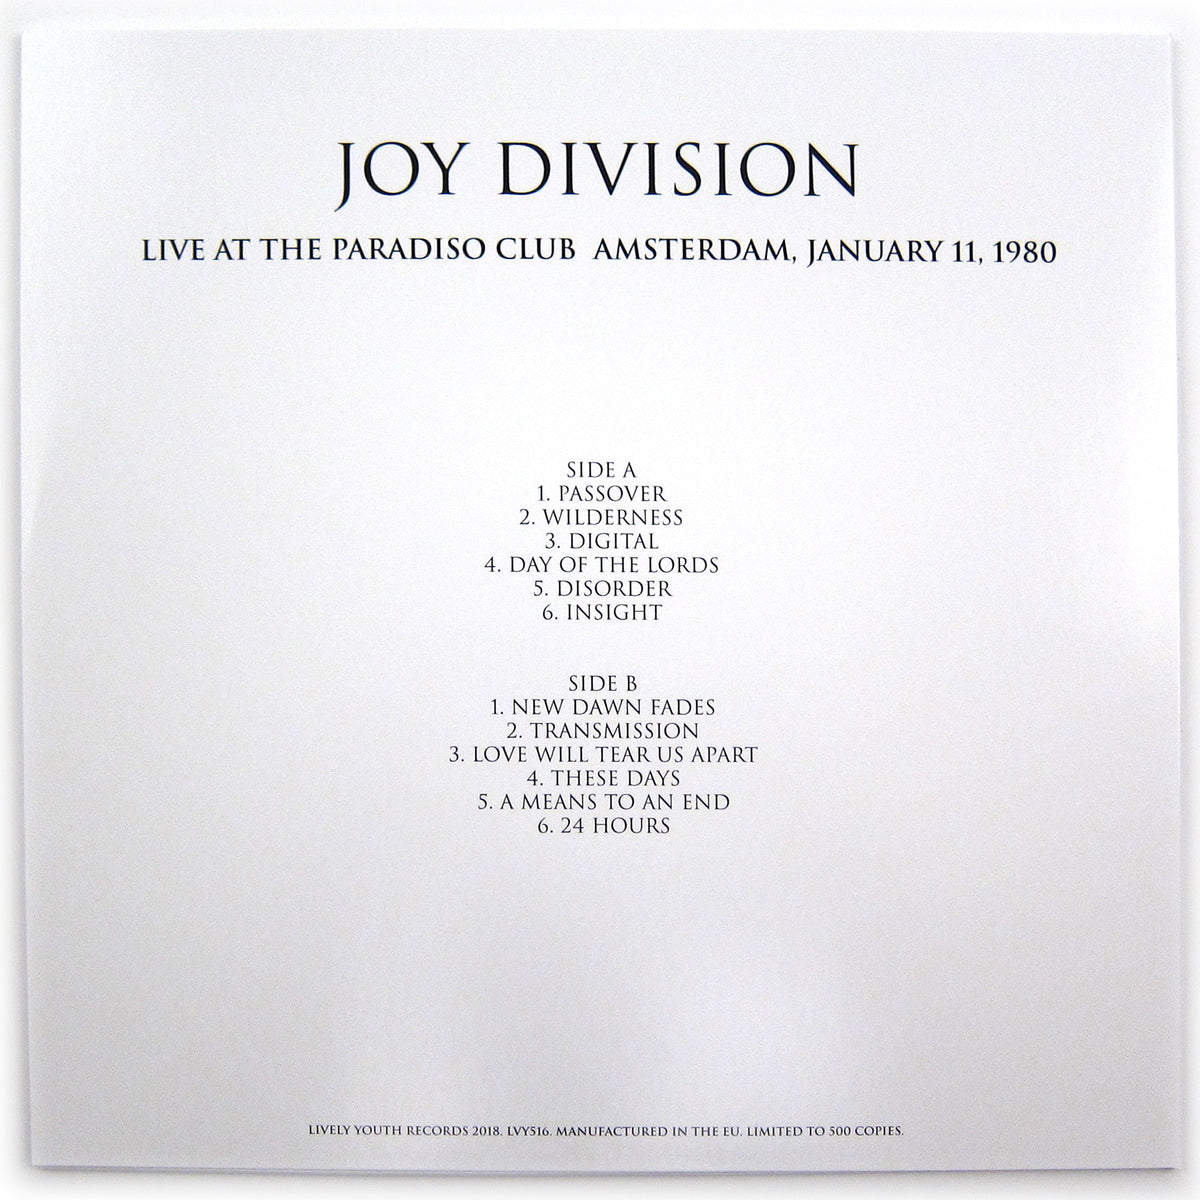 Joy Division: Live At The Paradiso Club, Amsterdam January 11, 1980 LP